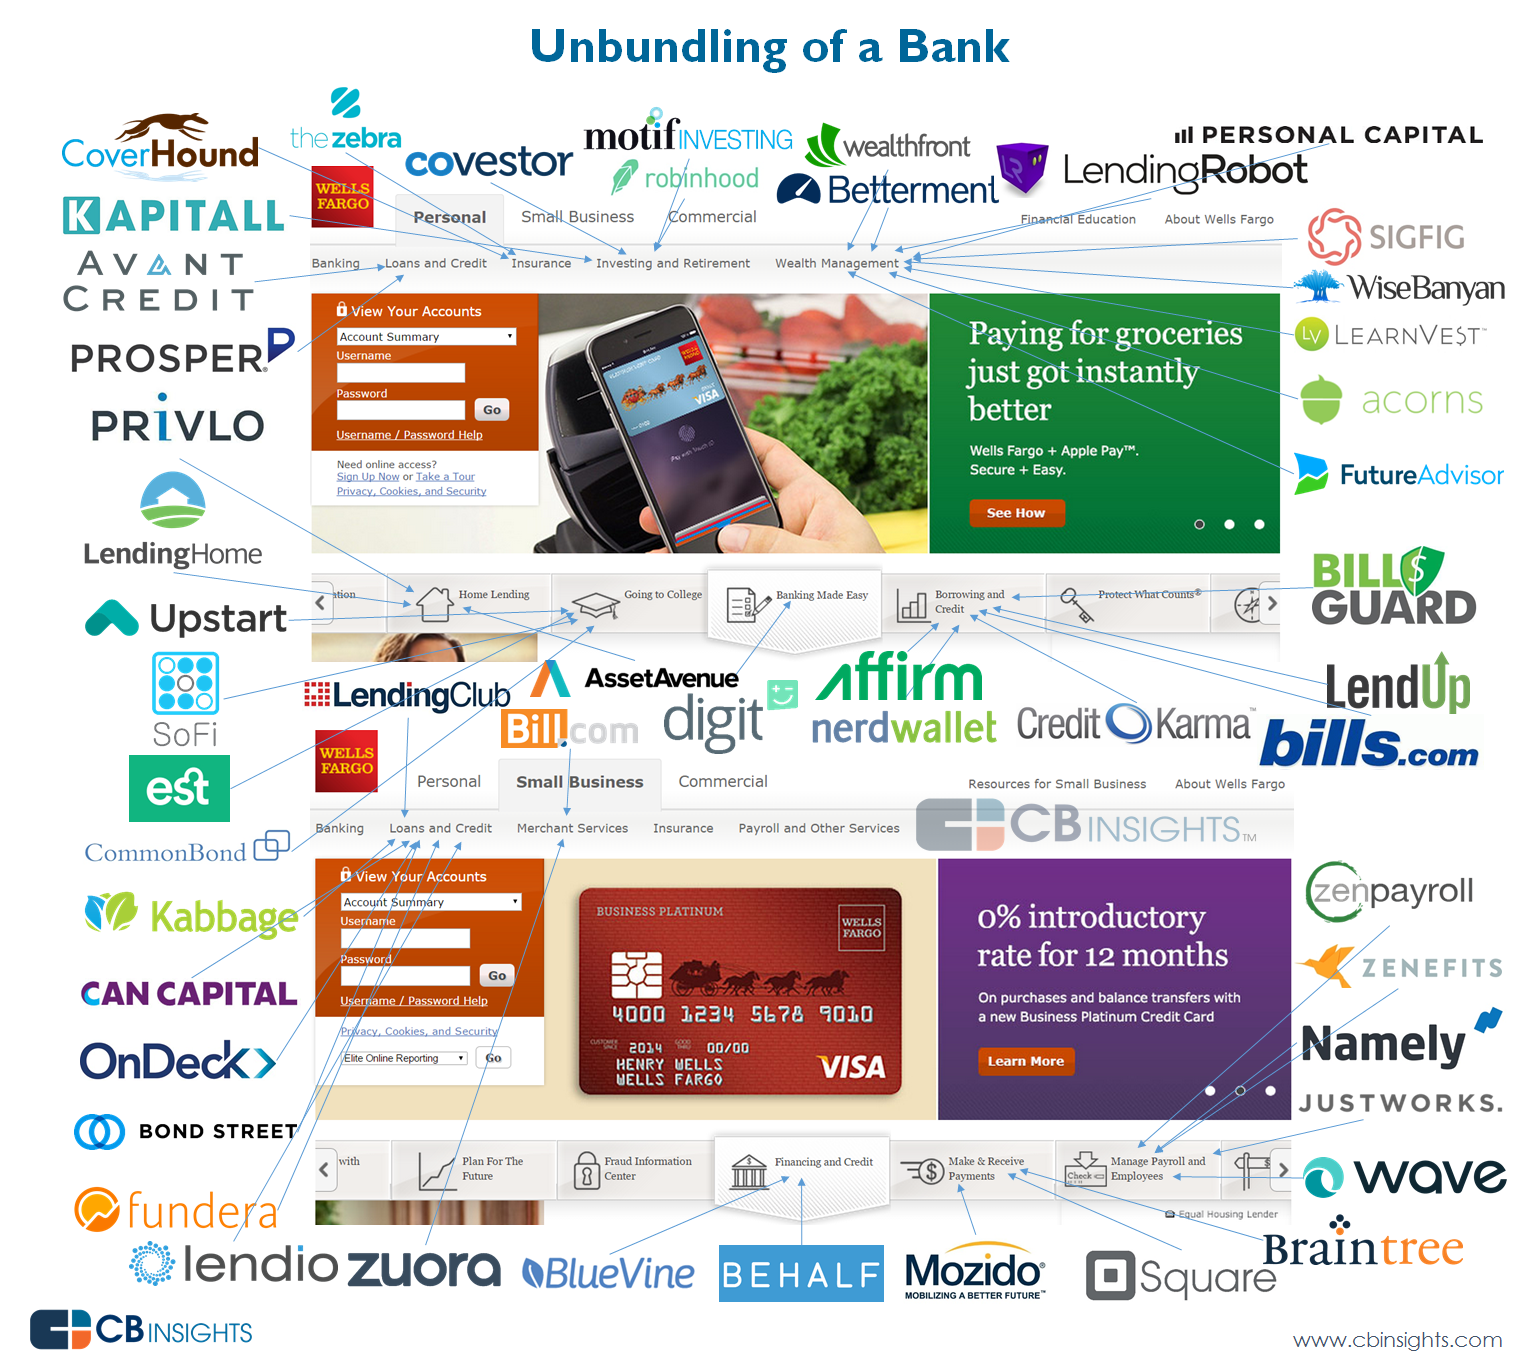 Unbundling-of-a-bank-V2